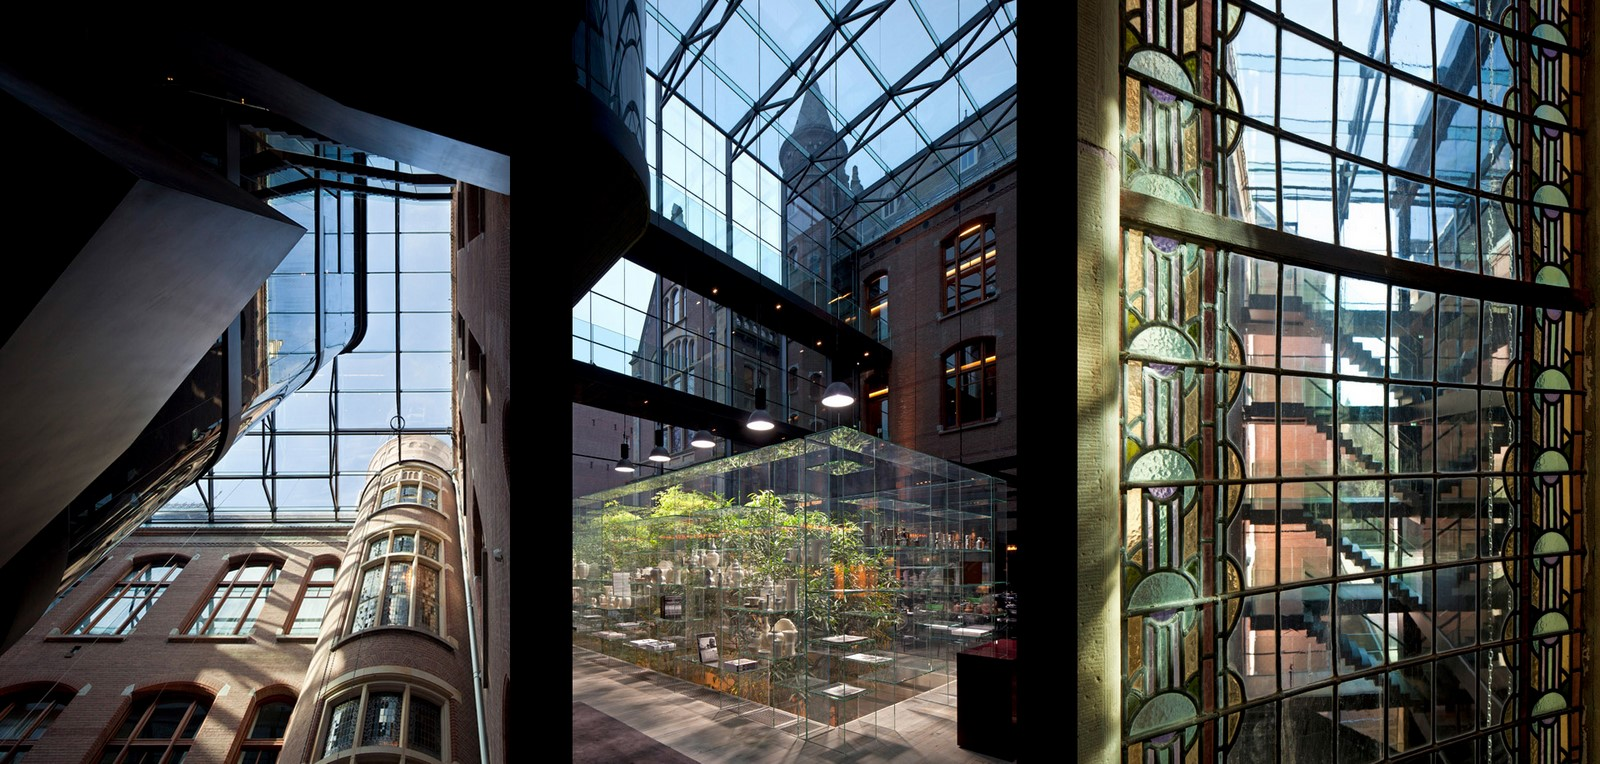 15 Historical Buildings With Modern Interiors - Sheet32